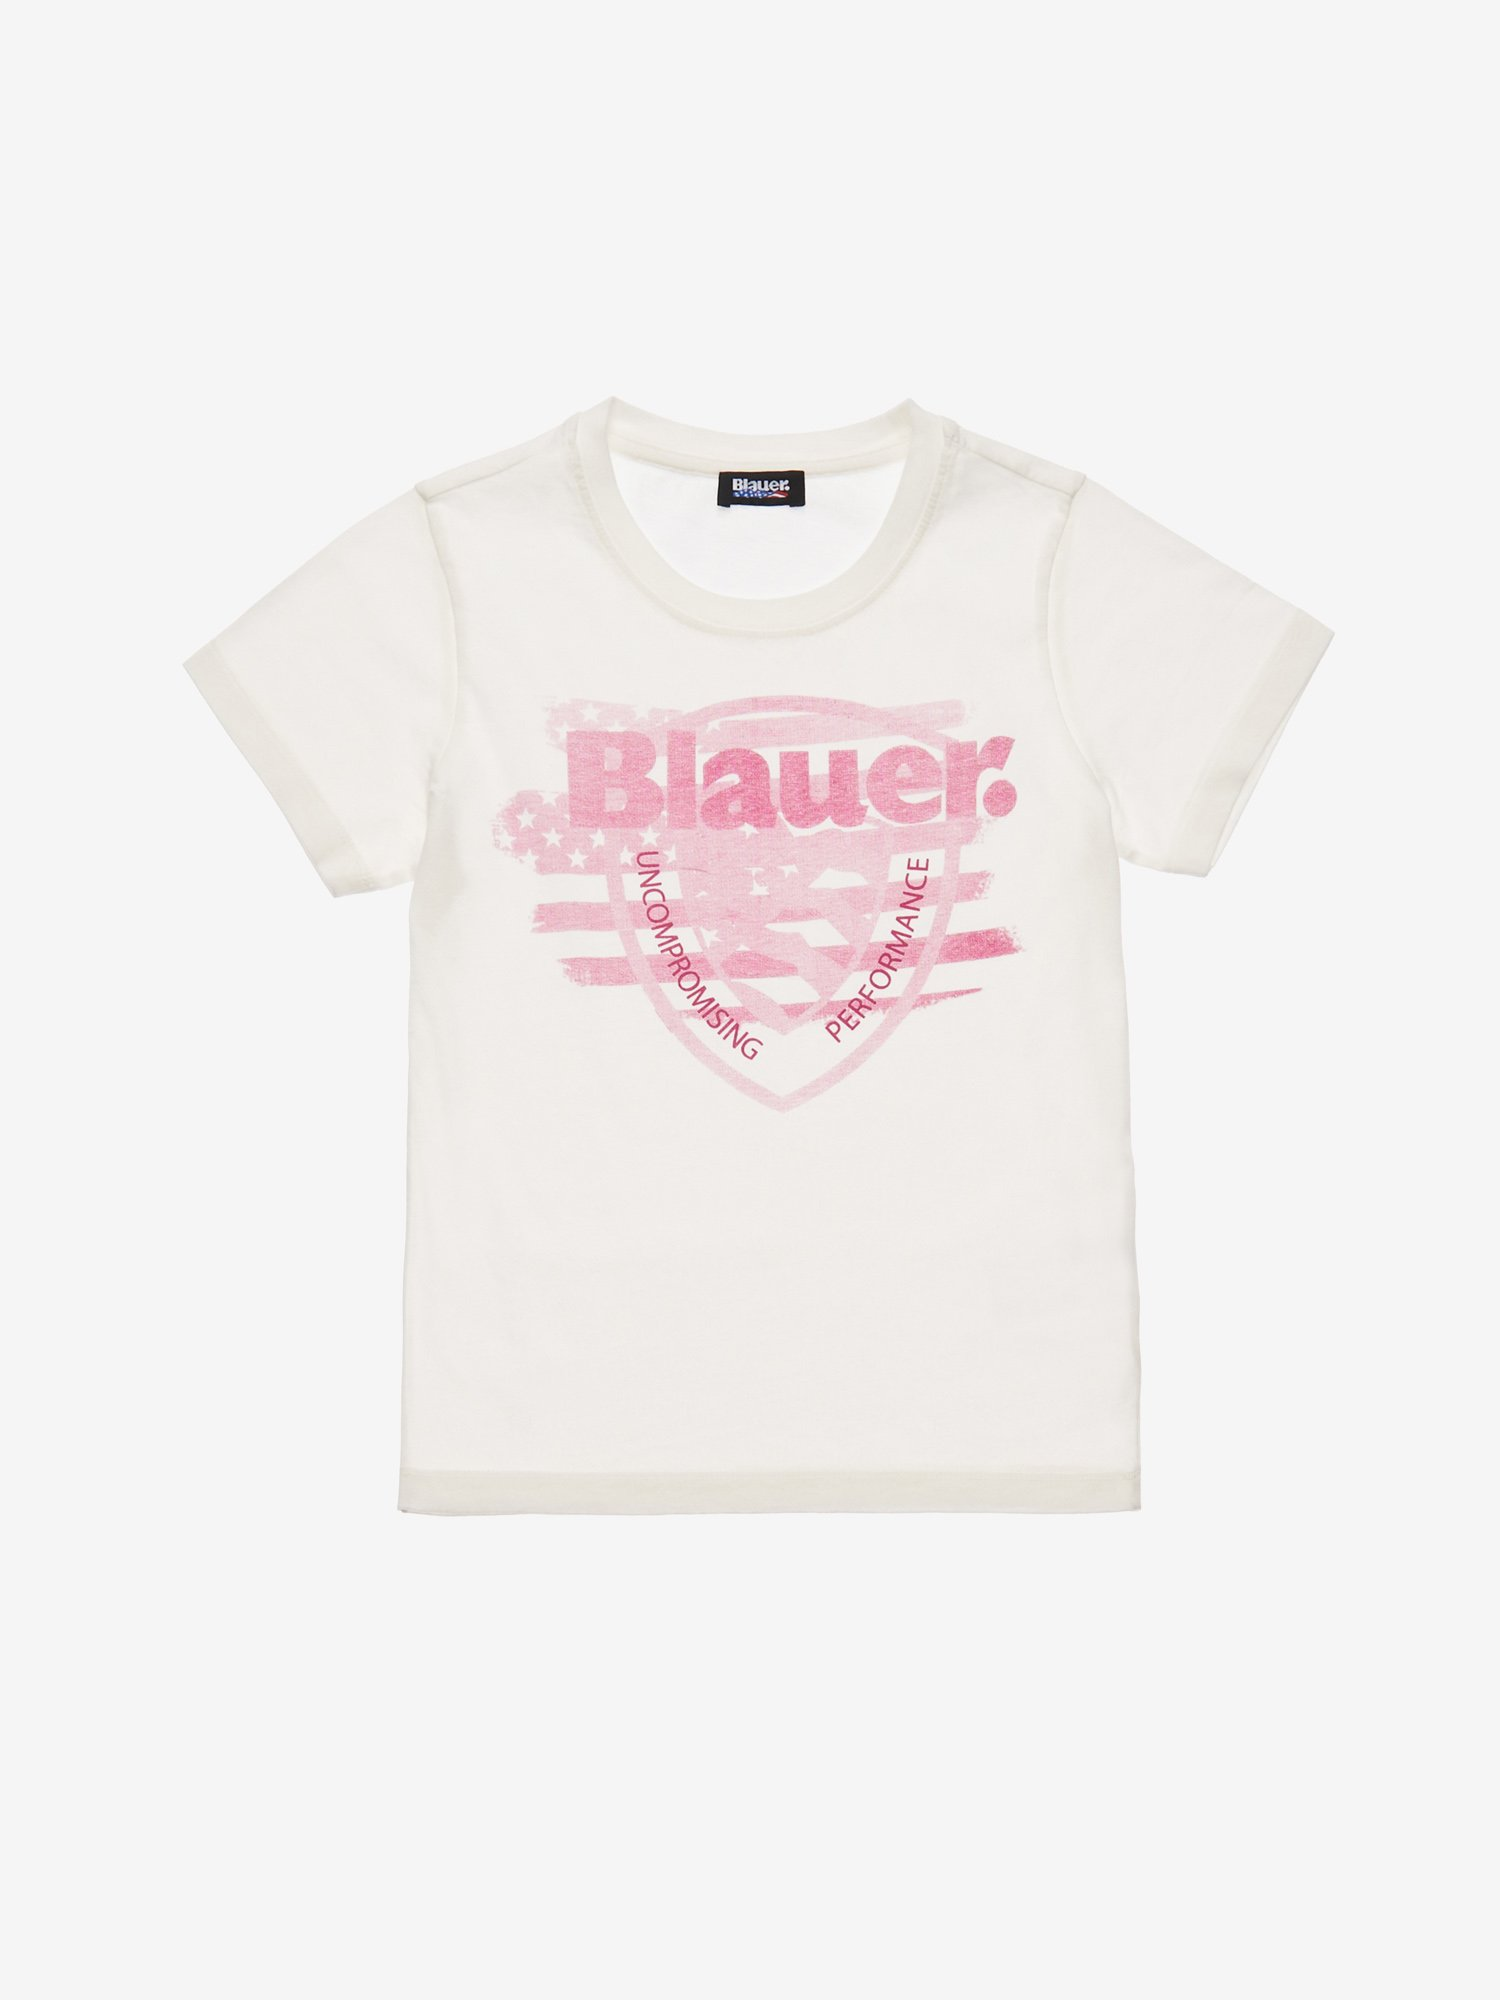 JUNIOR BLAUER USA SHIELD T-SHIRT - Blauer